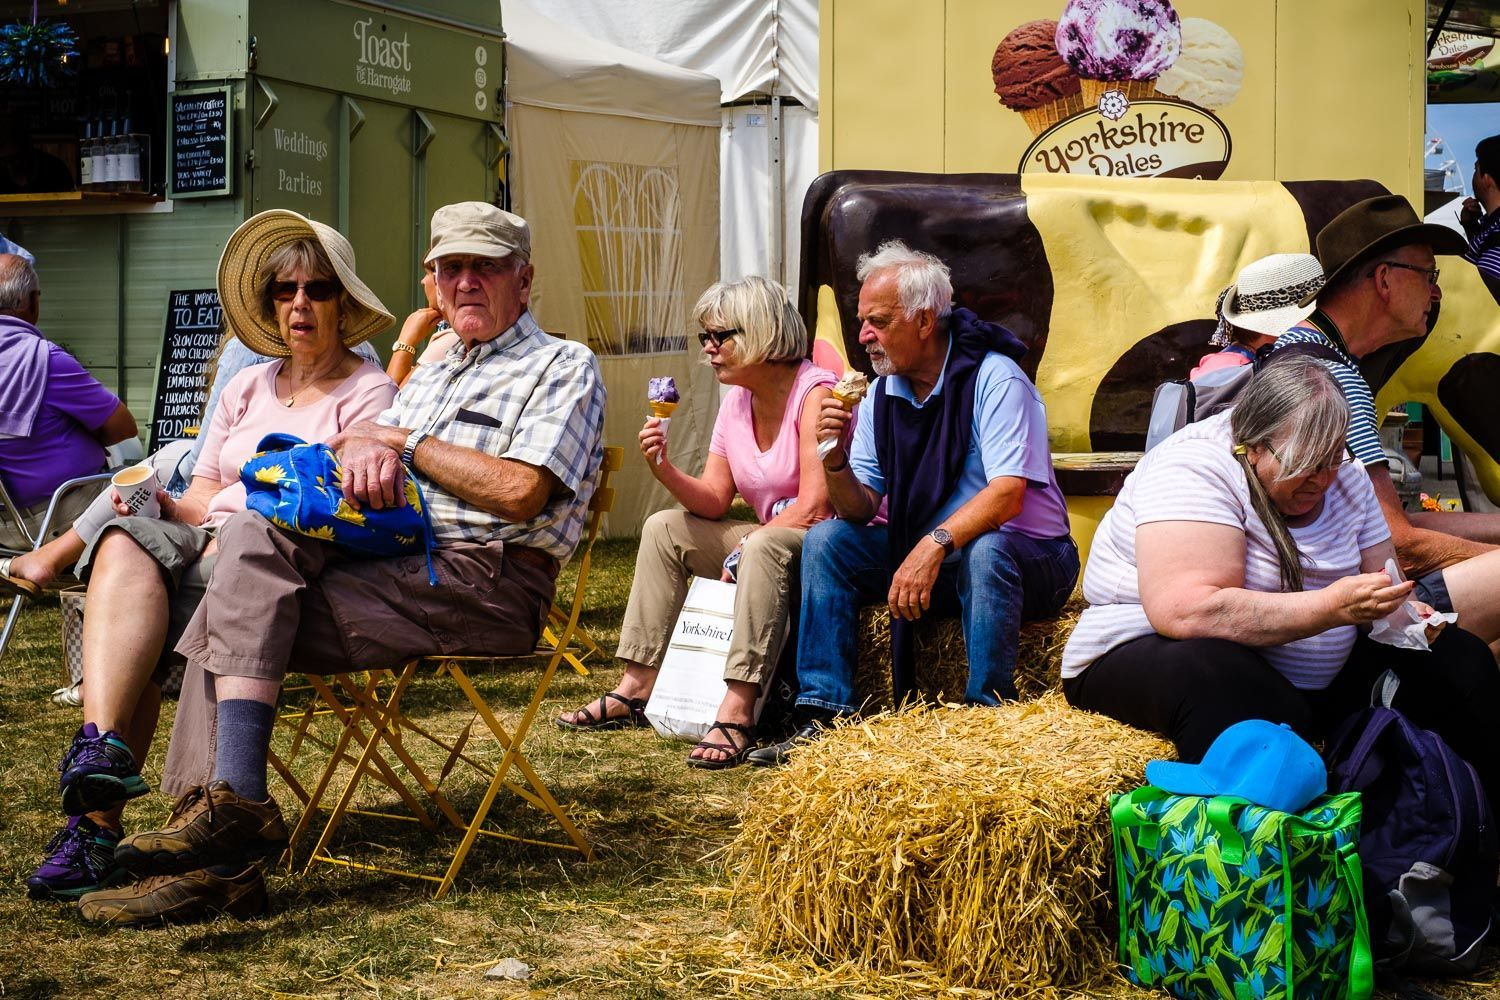 street photo of mature icecream eaters at country show